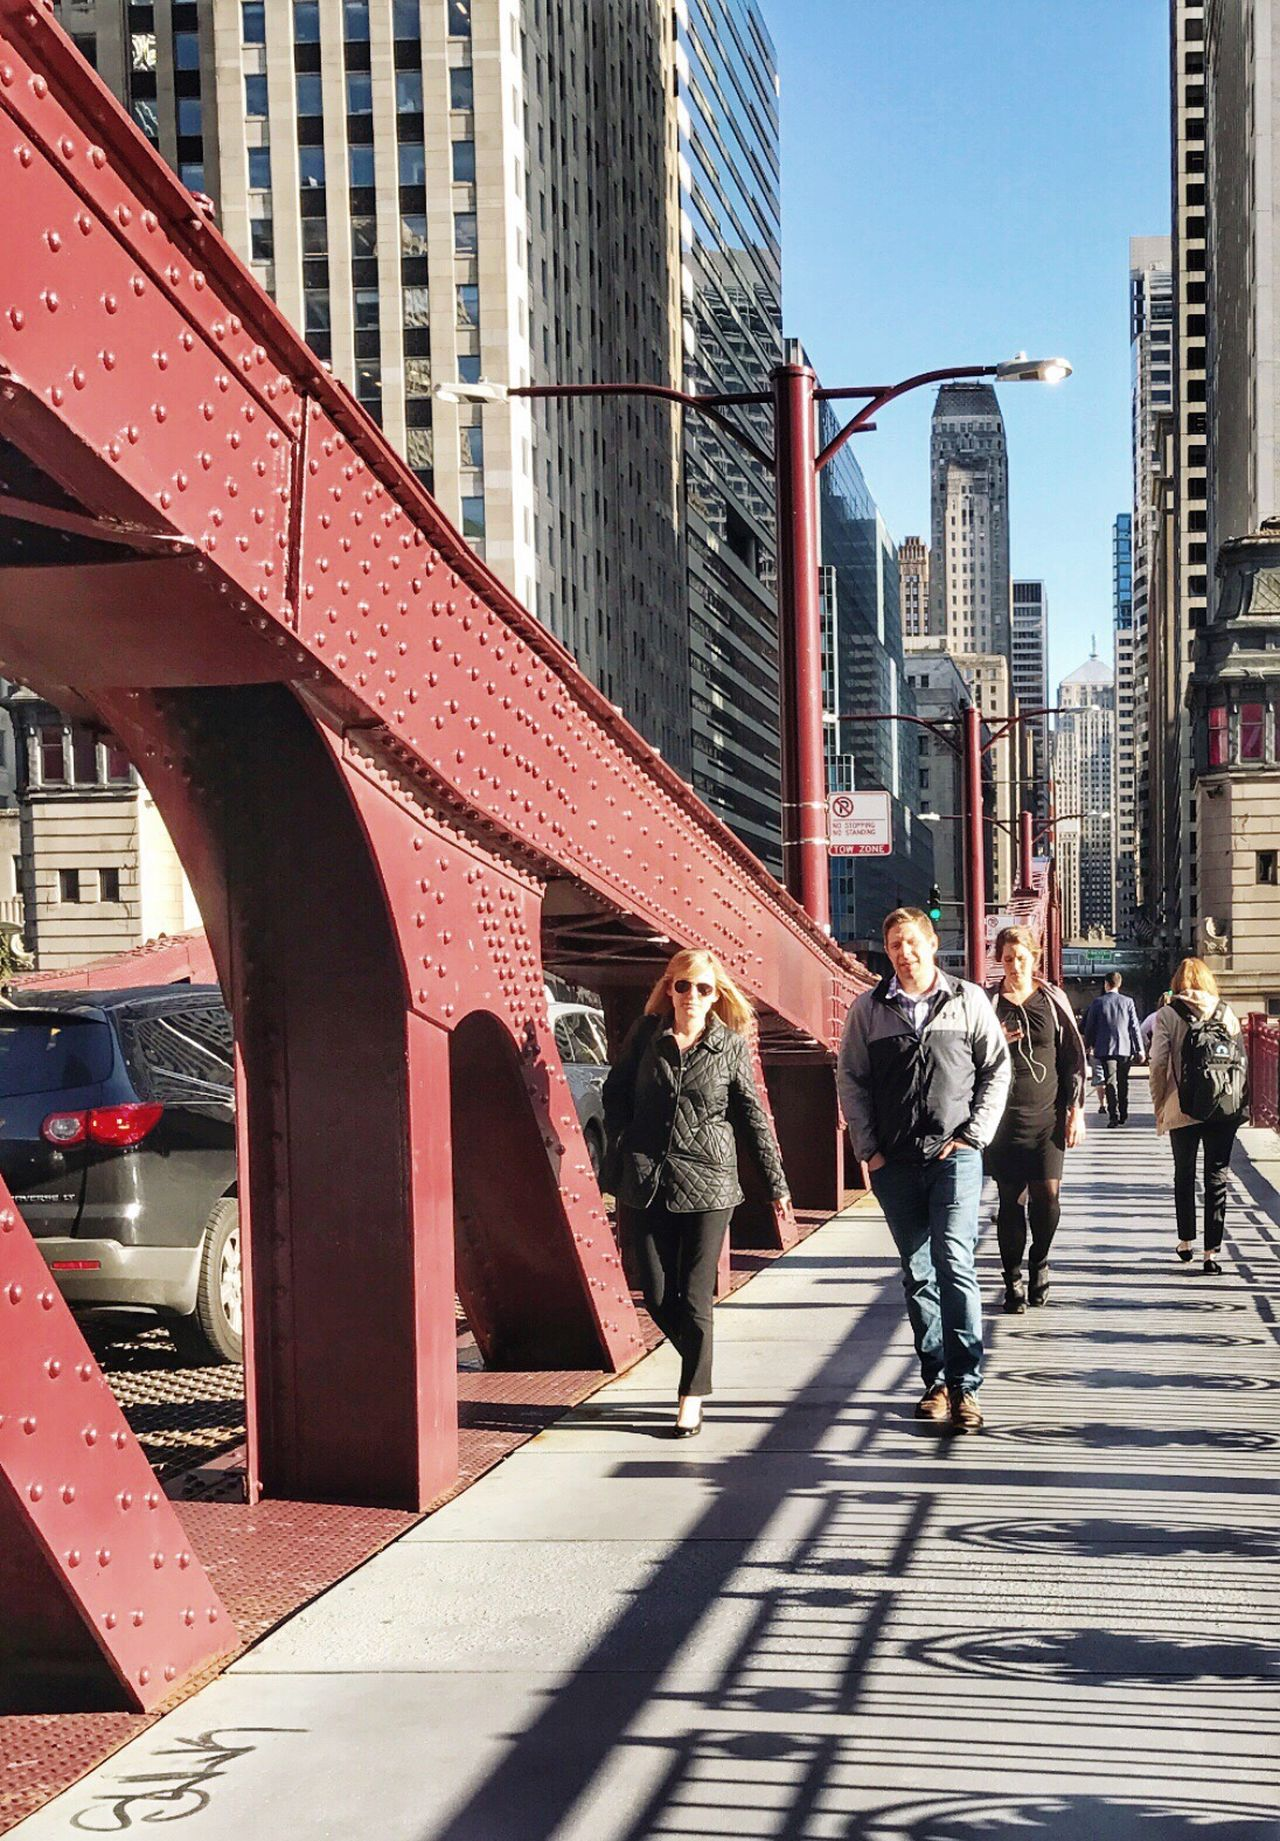 Sunny ☀️ Sunny Day on Lasalle Street ⛩ Bridge Financial District  🏦 Shadow Shadows & Lights Monday Architecture City Life Street Photography People People Watching Chicago Chicago Architecture Urban Urban Landscape Urbanphotography Urban Exploration Explore IPhoneography Eyeemphotography EyeEm